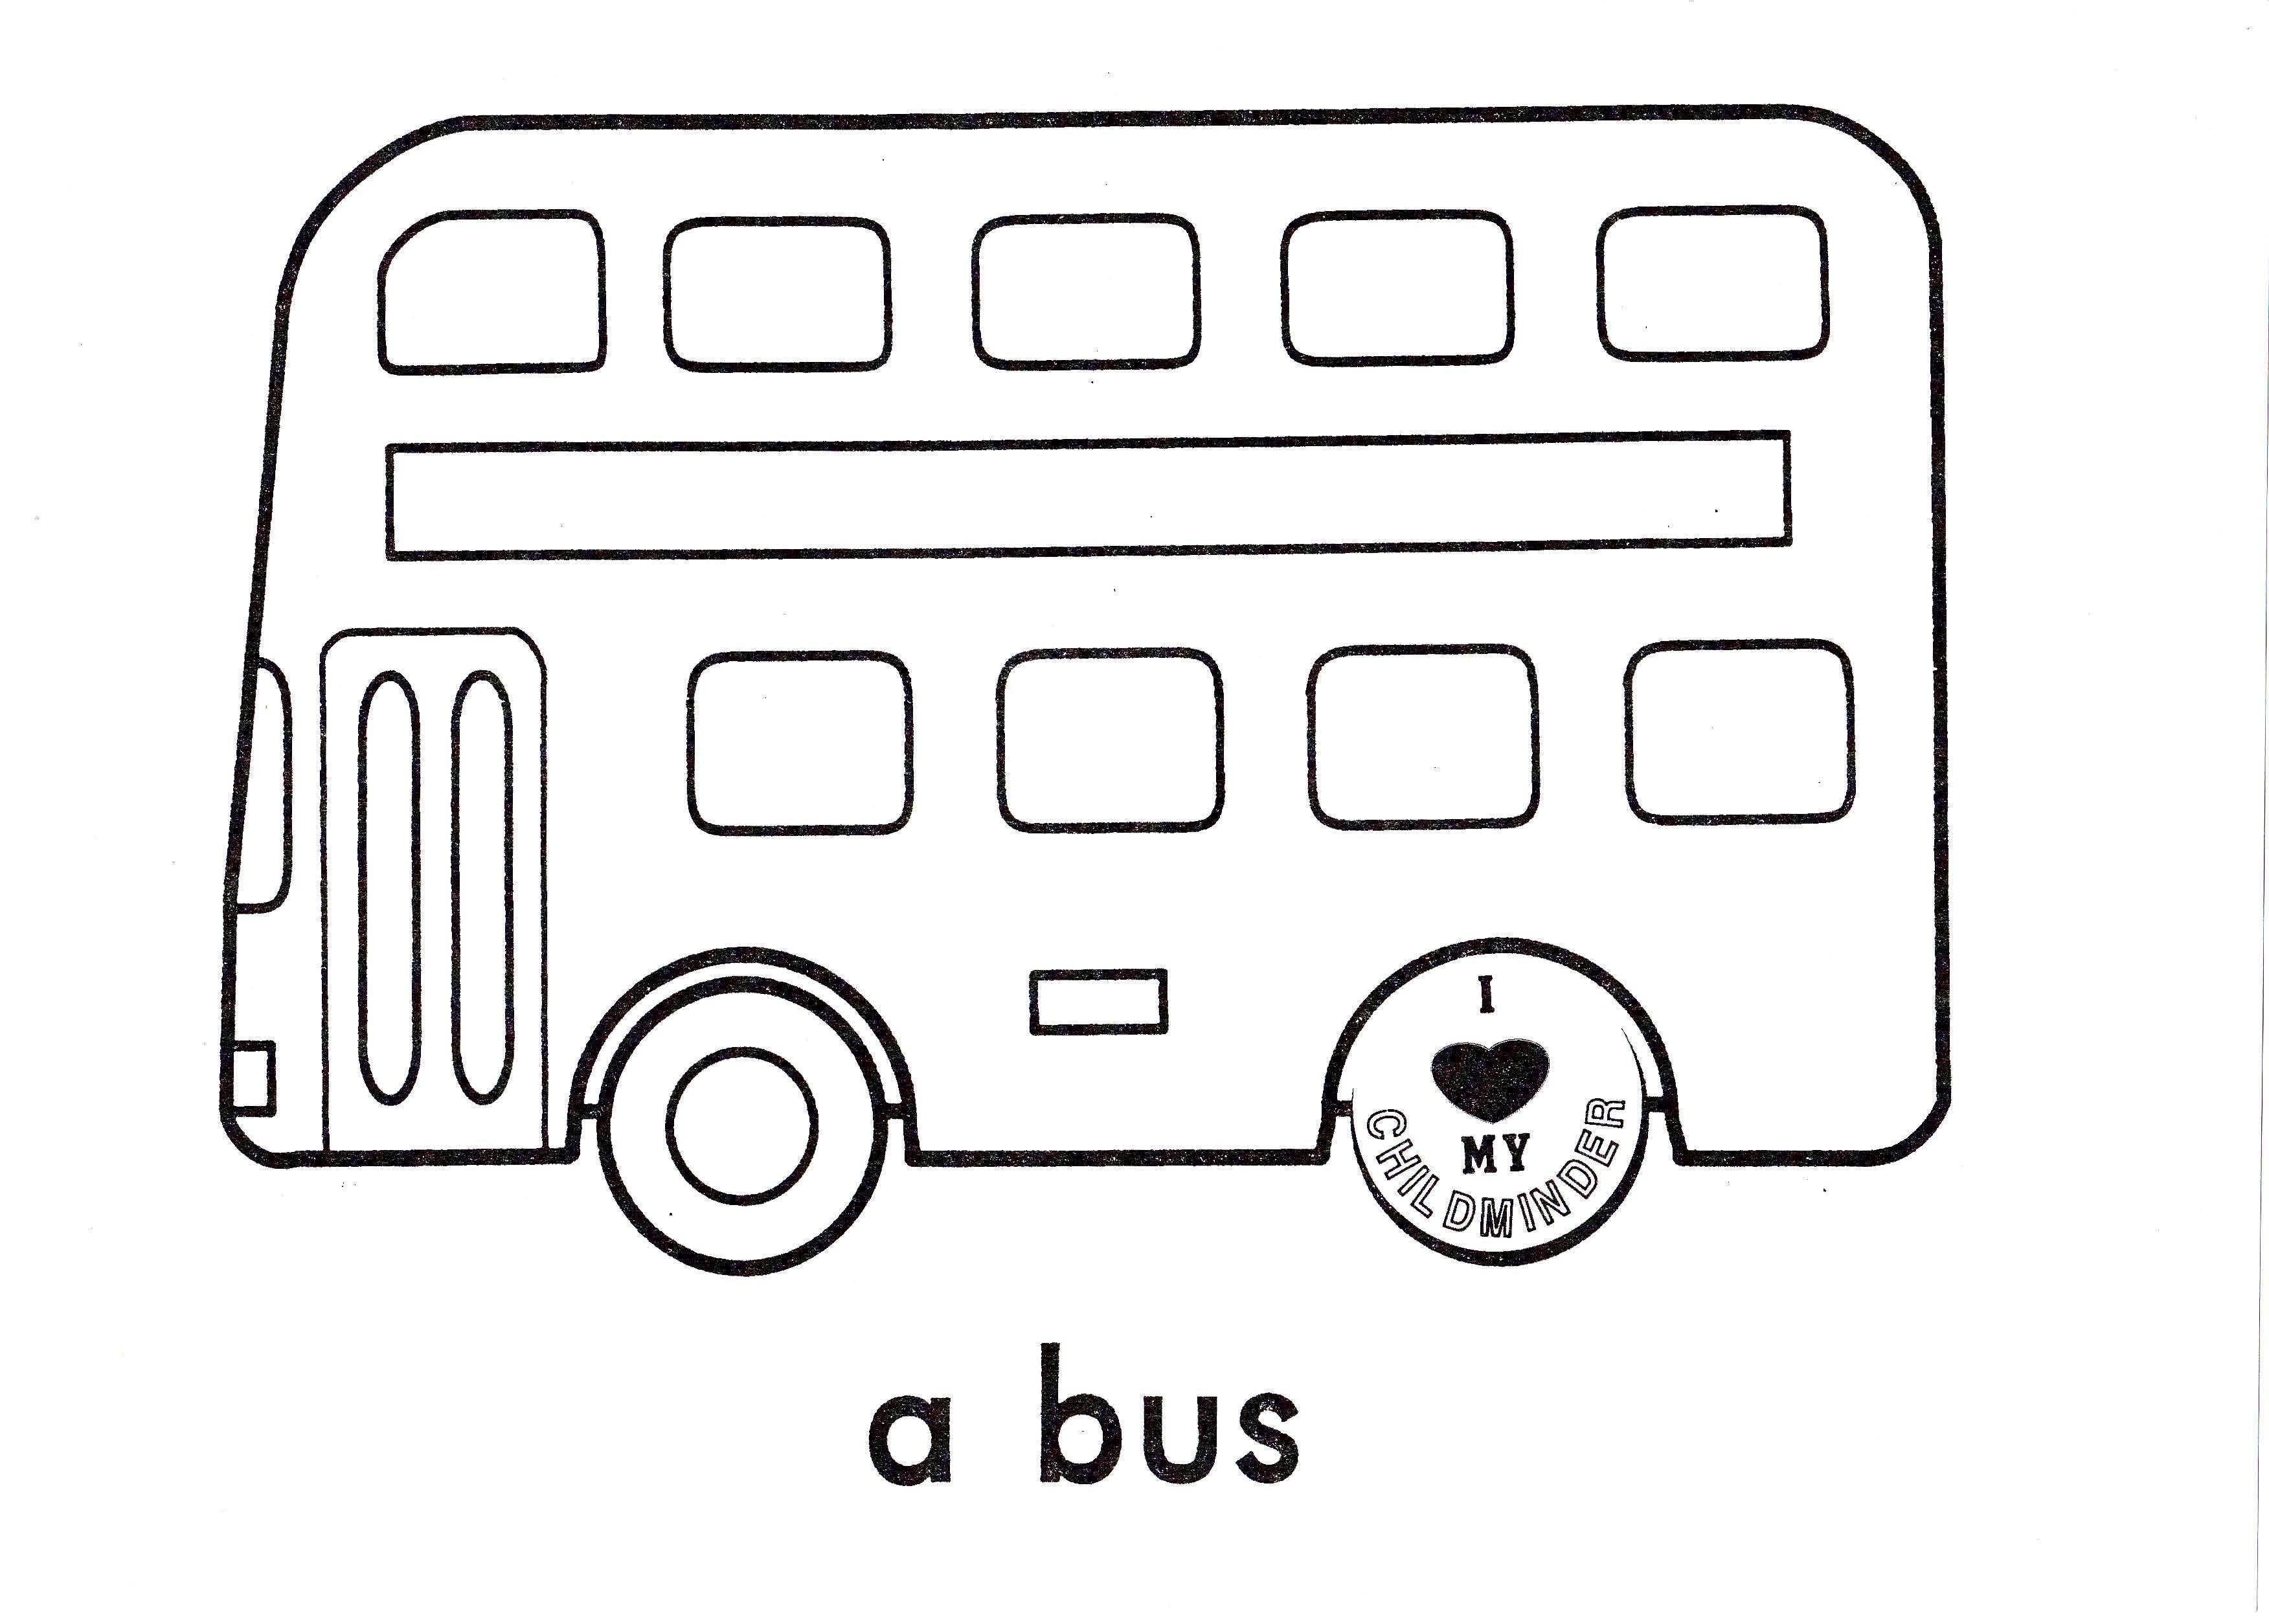 Coloring sheets for adults transport buses - Bus Multilevel Coloring Pages For Kids Printable Bus Coloring Pages For Kids